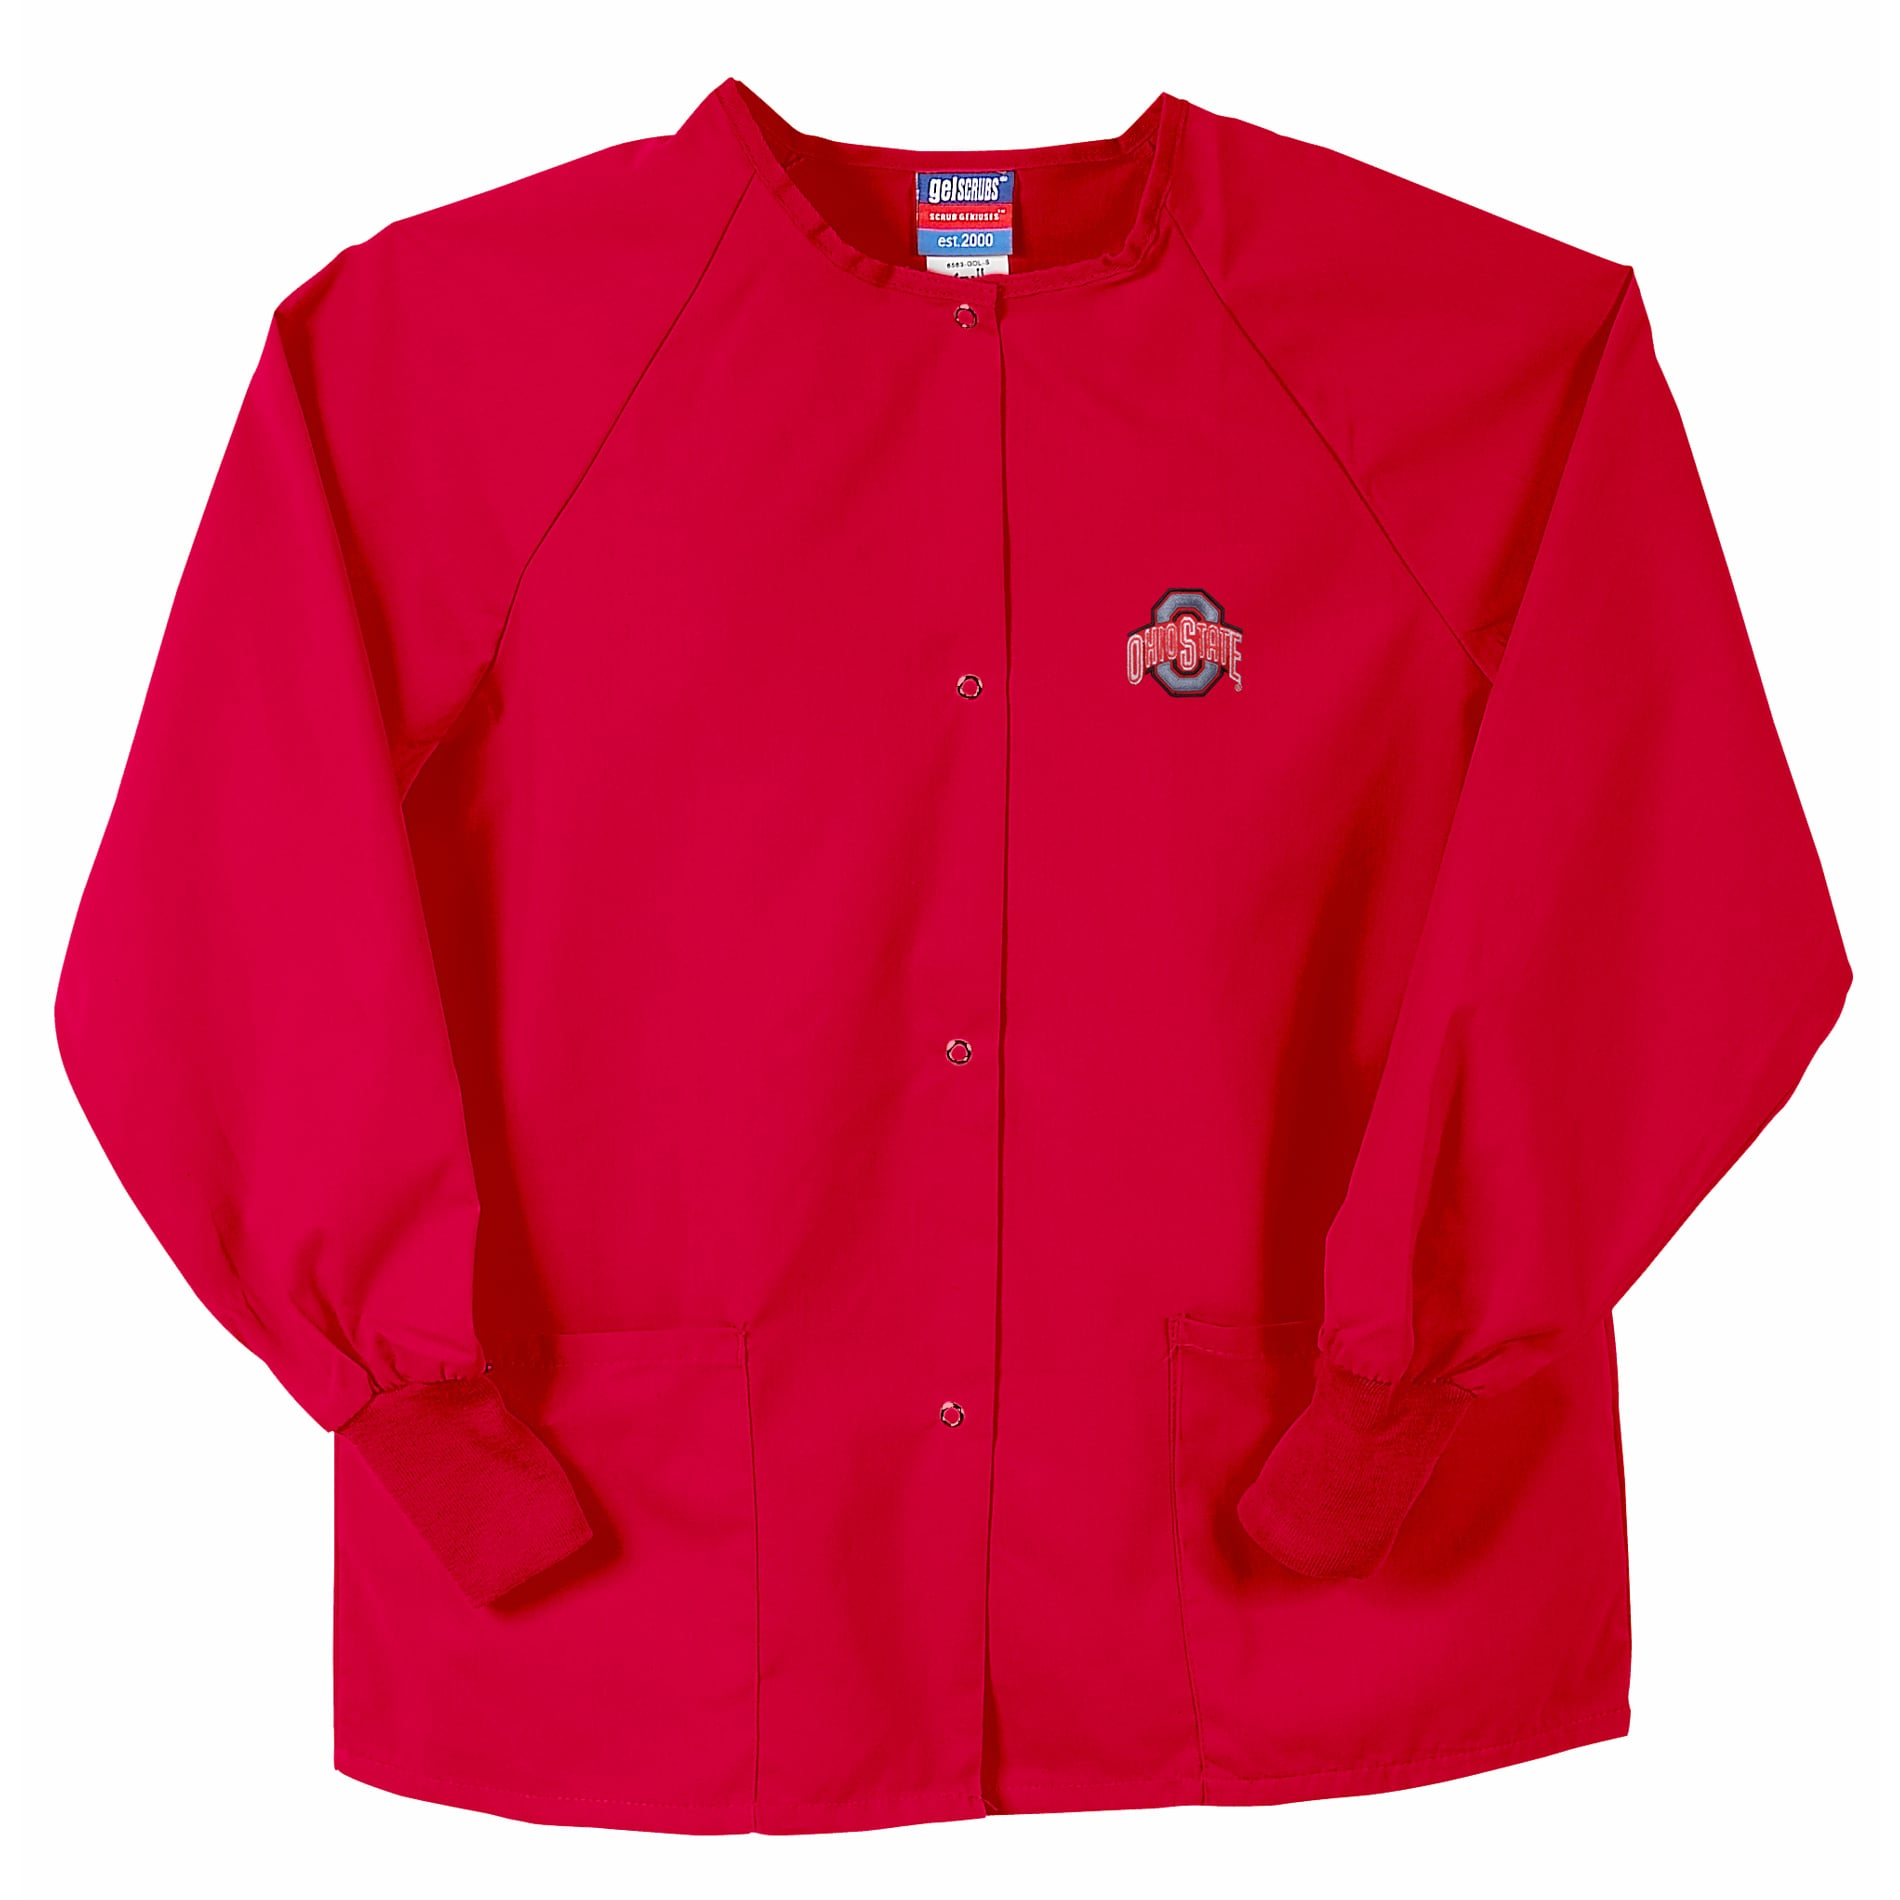 Gelscrubs Unisex Red Ohio State Buckeyes Nurse Jacket